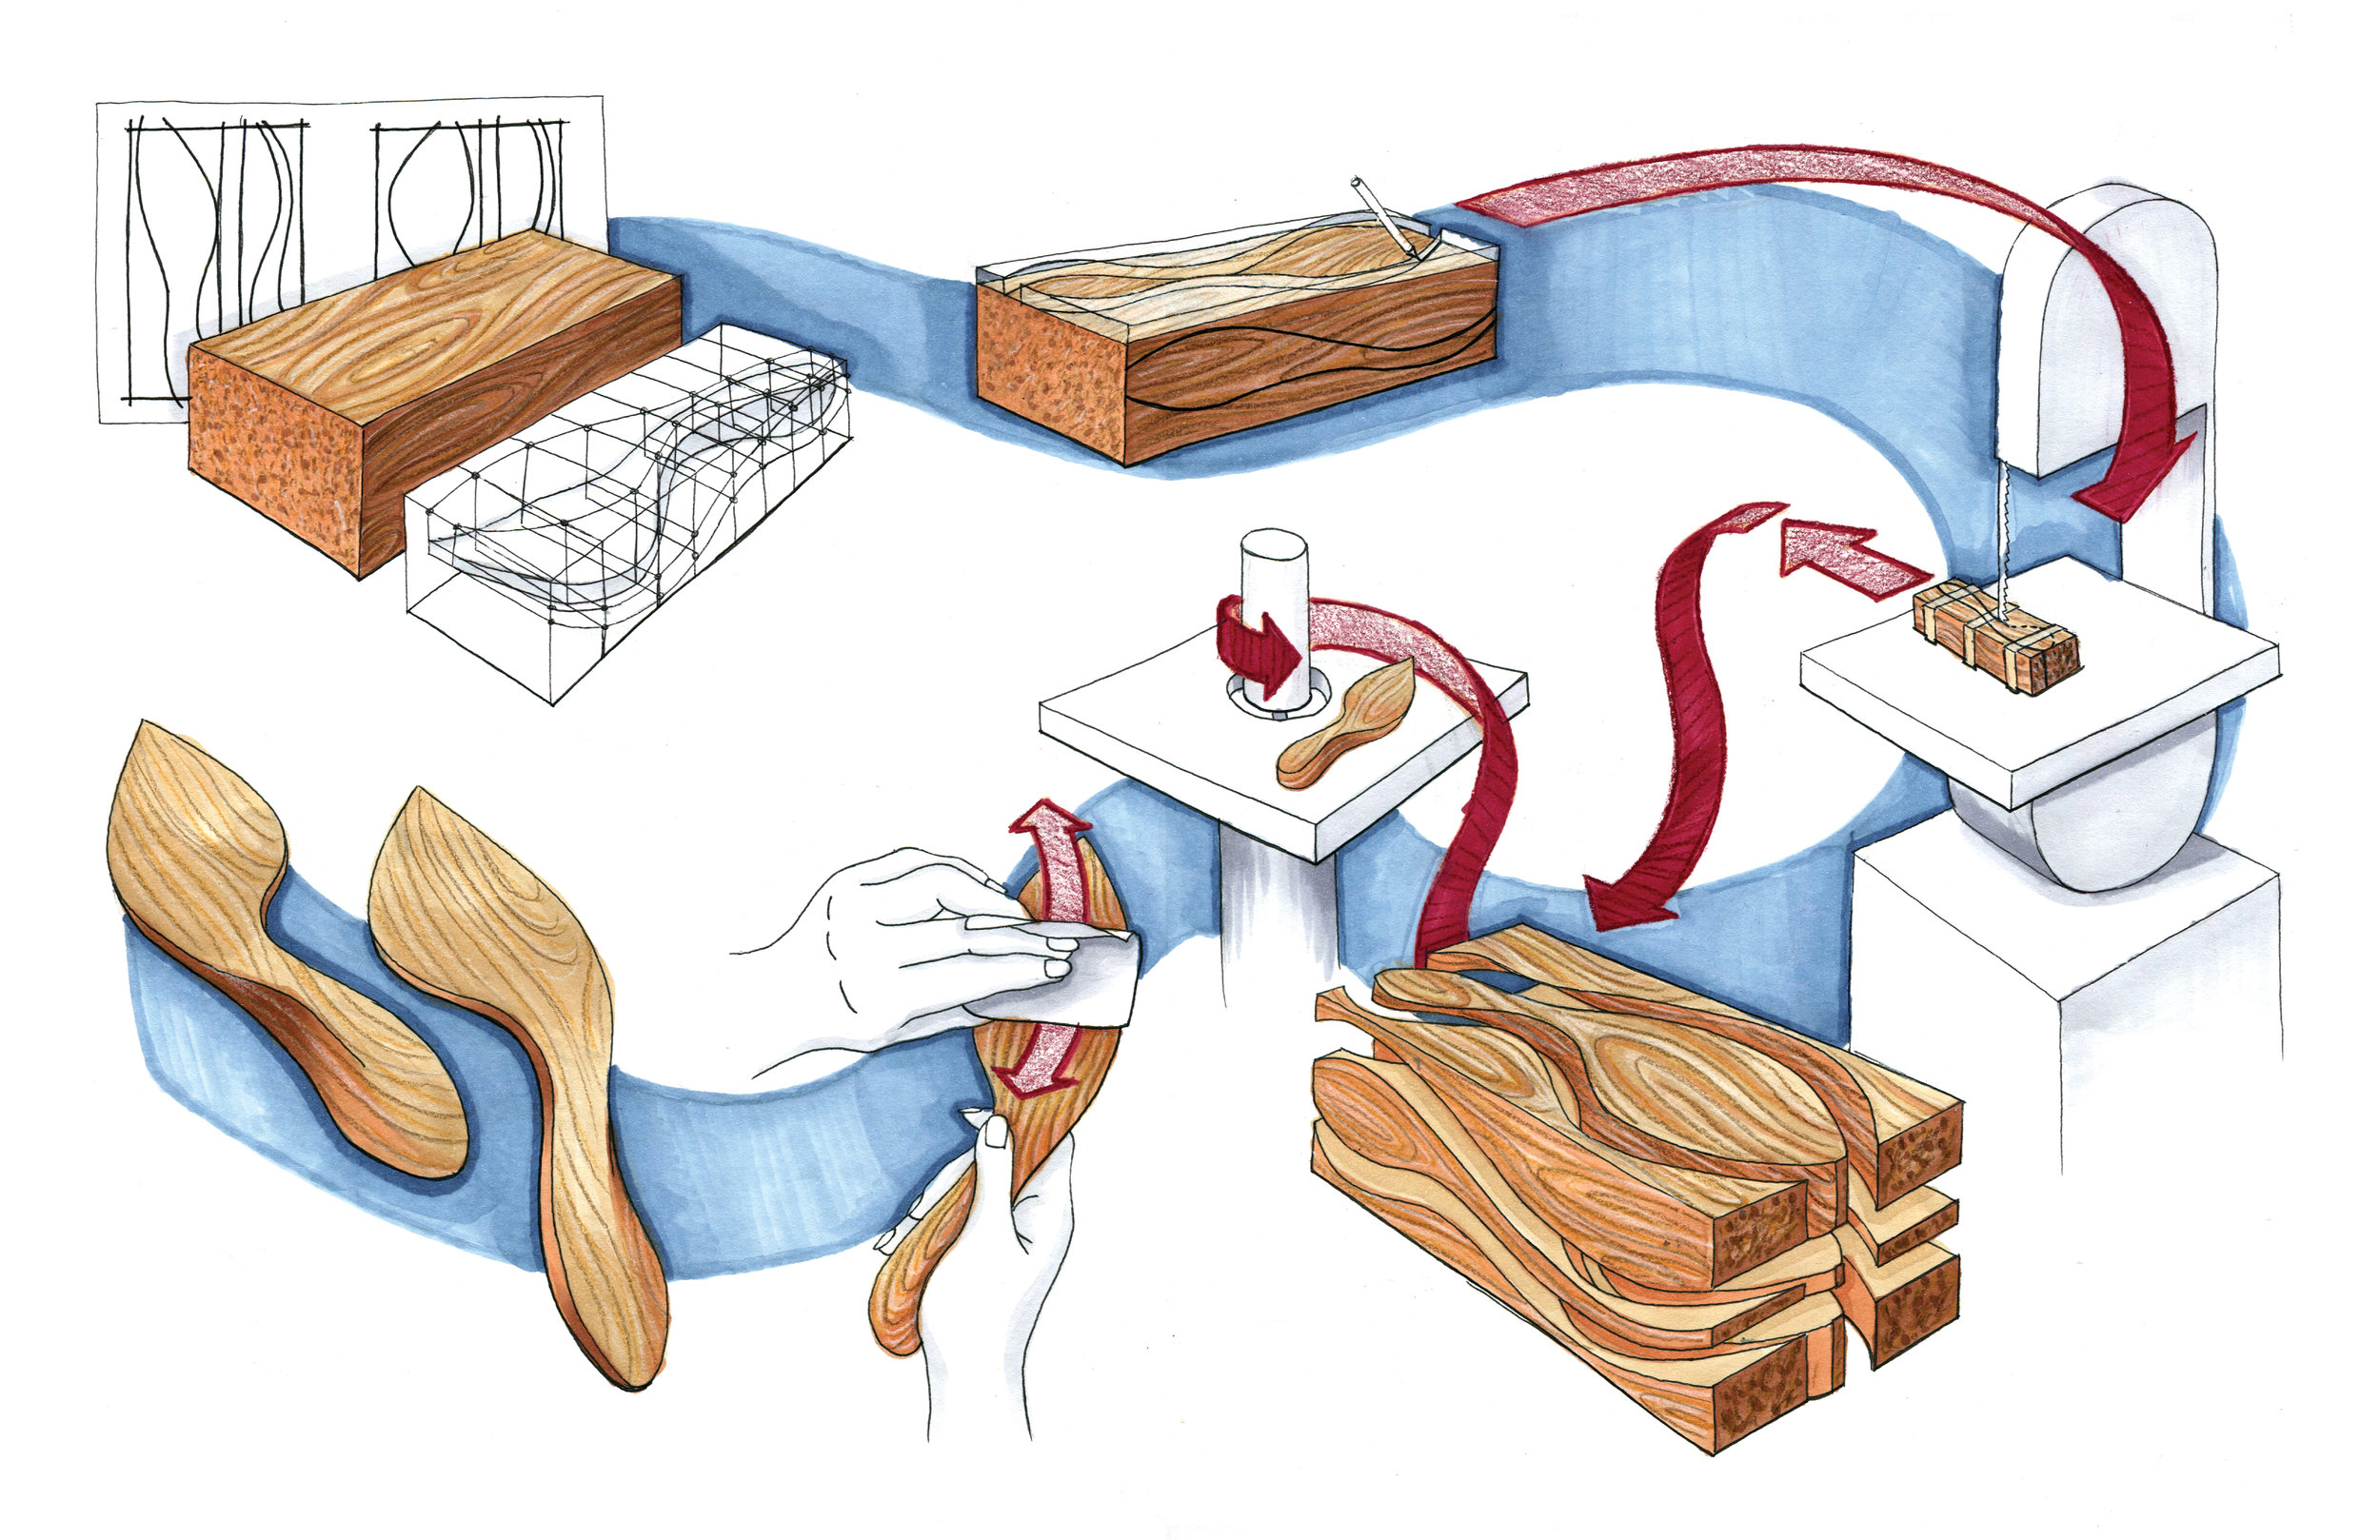 Graphic illustration of process of crafting salad tong — sketching and ideating, tracing outlines onto form, bandsaw rough cuts, initial sanding on machines, hand sanding.